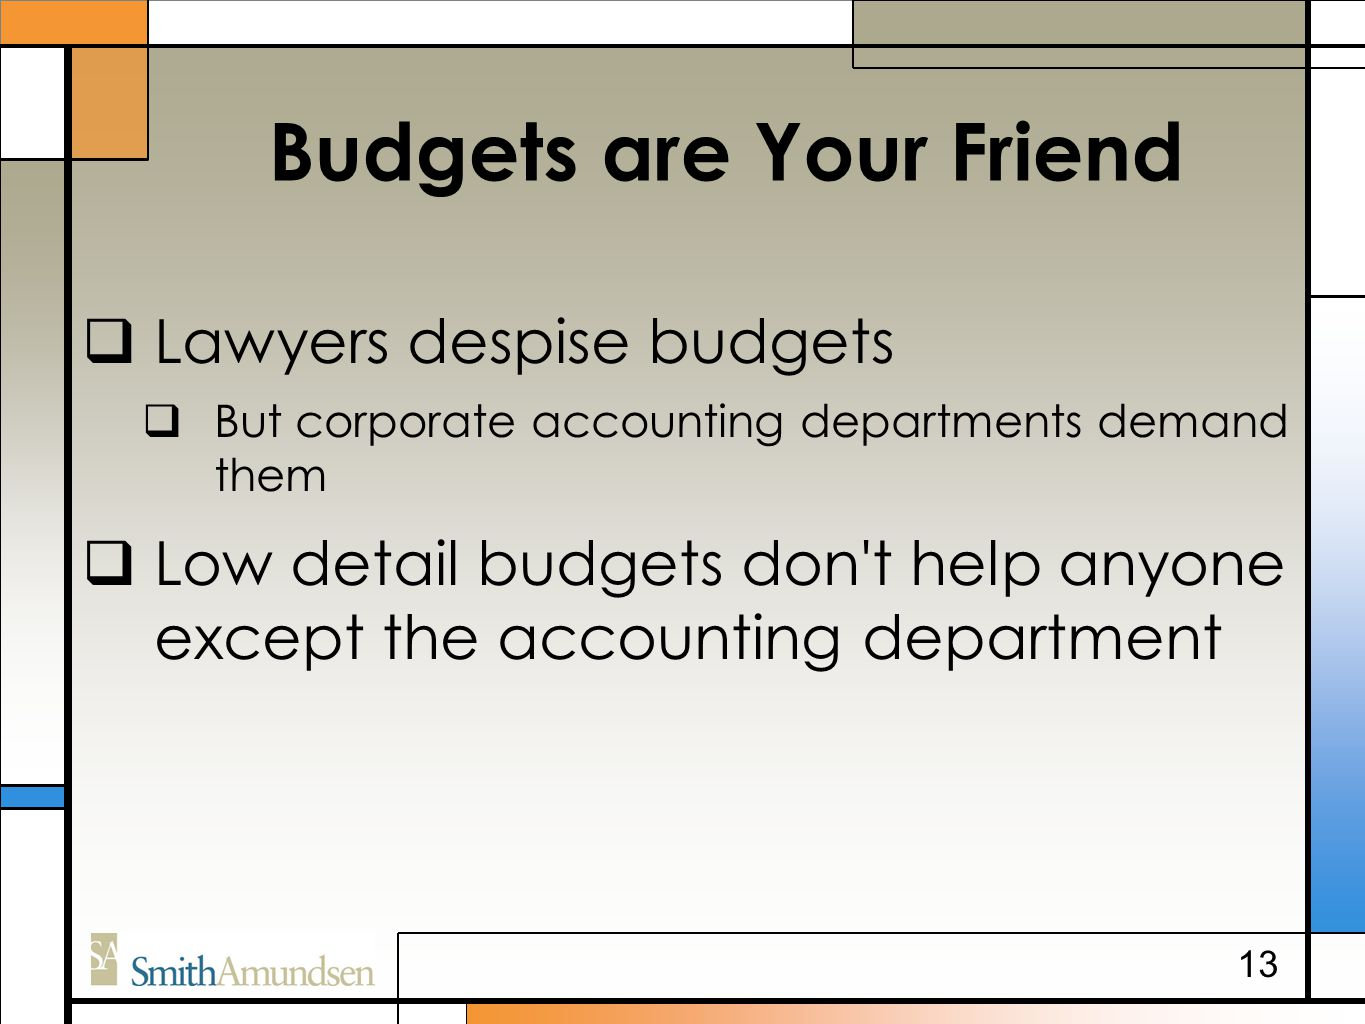 Budgets are Your Friend  Lawyers despise budgets  But corporate accounting departments demand them  Low detail budgets don't help anyone except the